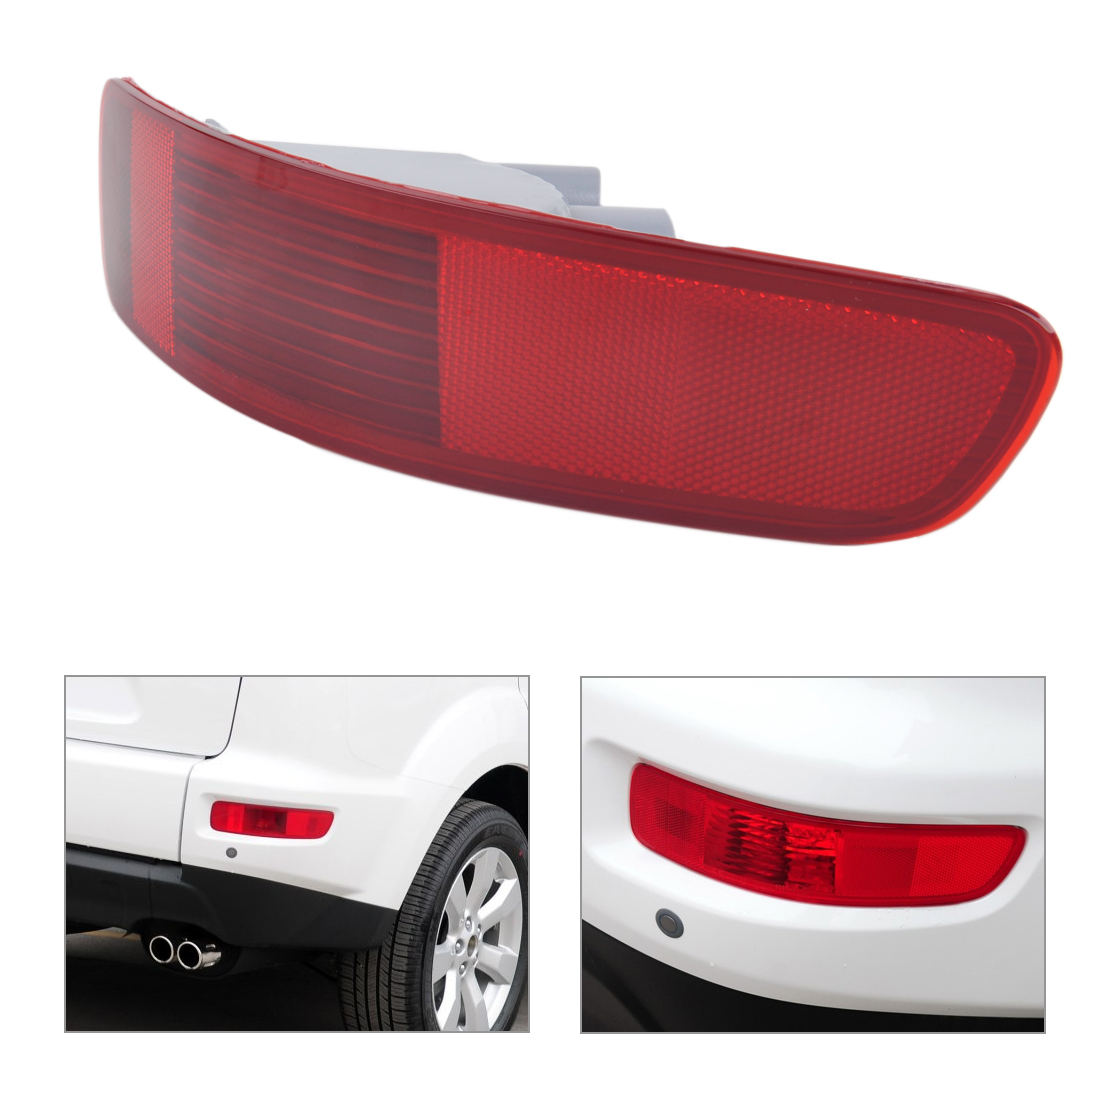 New Car Red Rear Right Tail Fog Light Lamp Reflector 8355A004 Fit for Mitsubishi Outlander 2007 2008 2009 2010 2011 2012 car rear trunk security shield cargo cover for jeep compass 2007 2008 2009 2010 2011 high qualit auto accessories